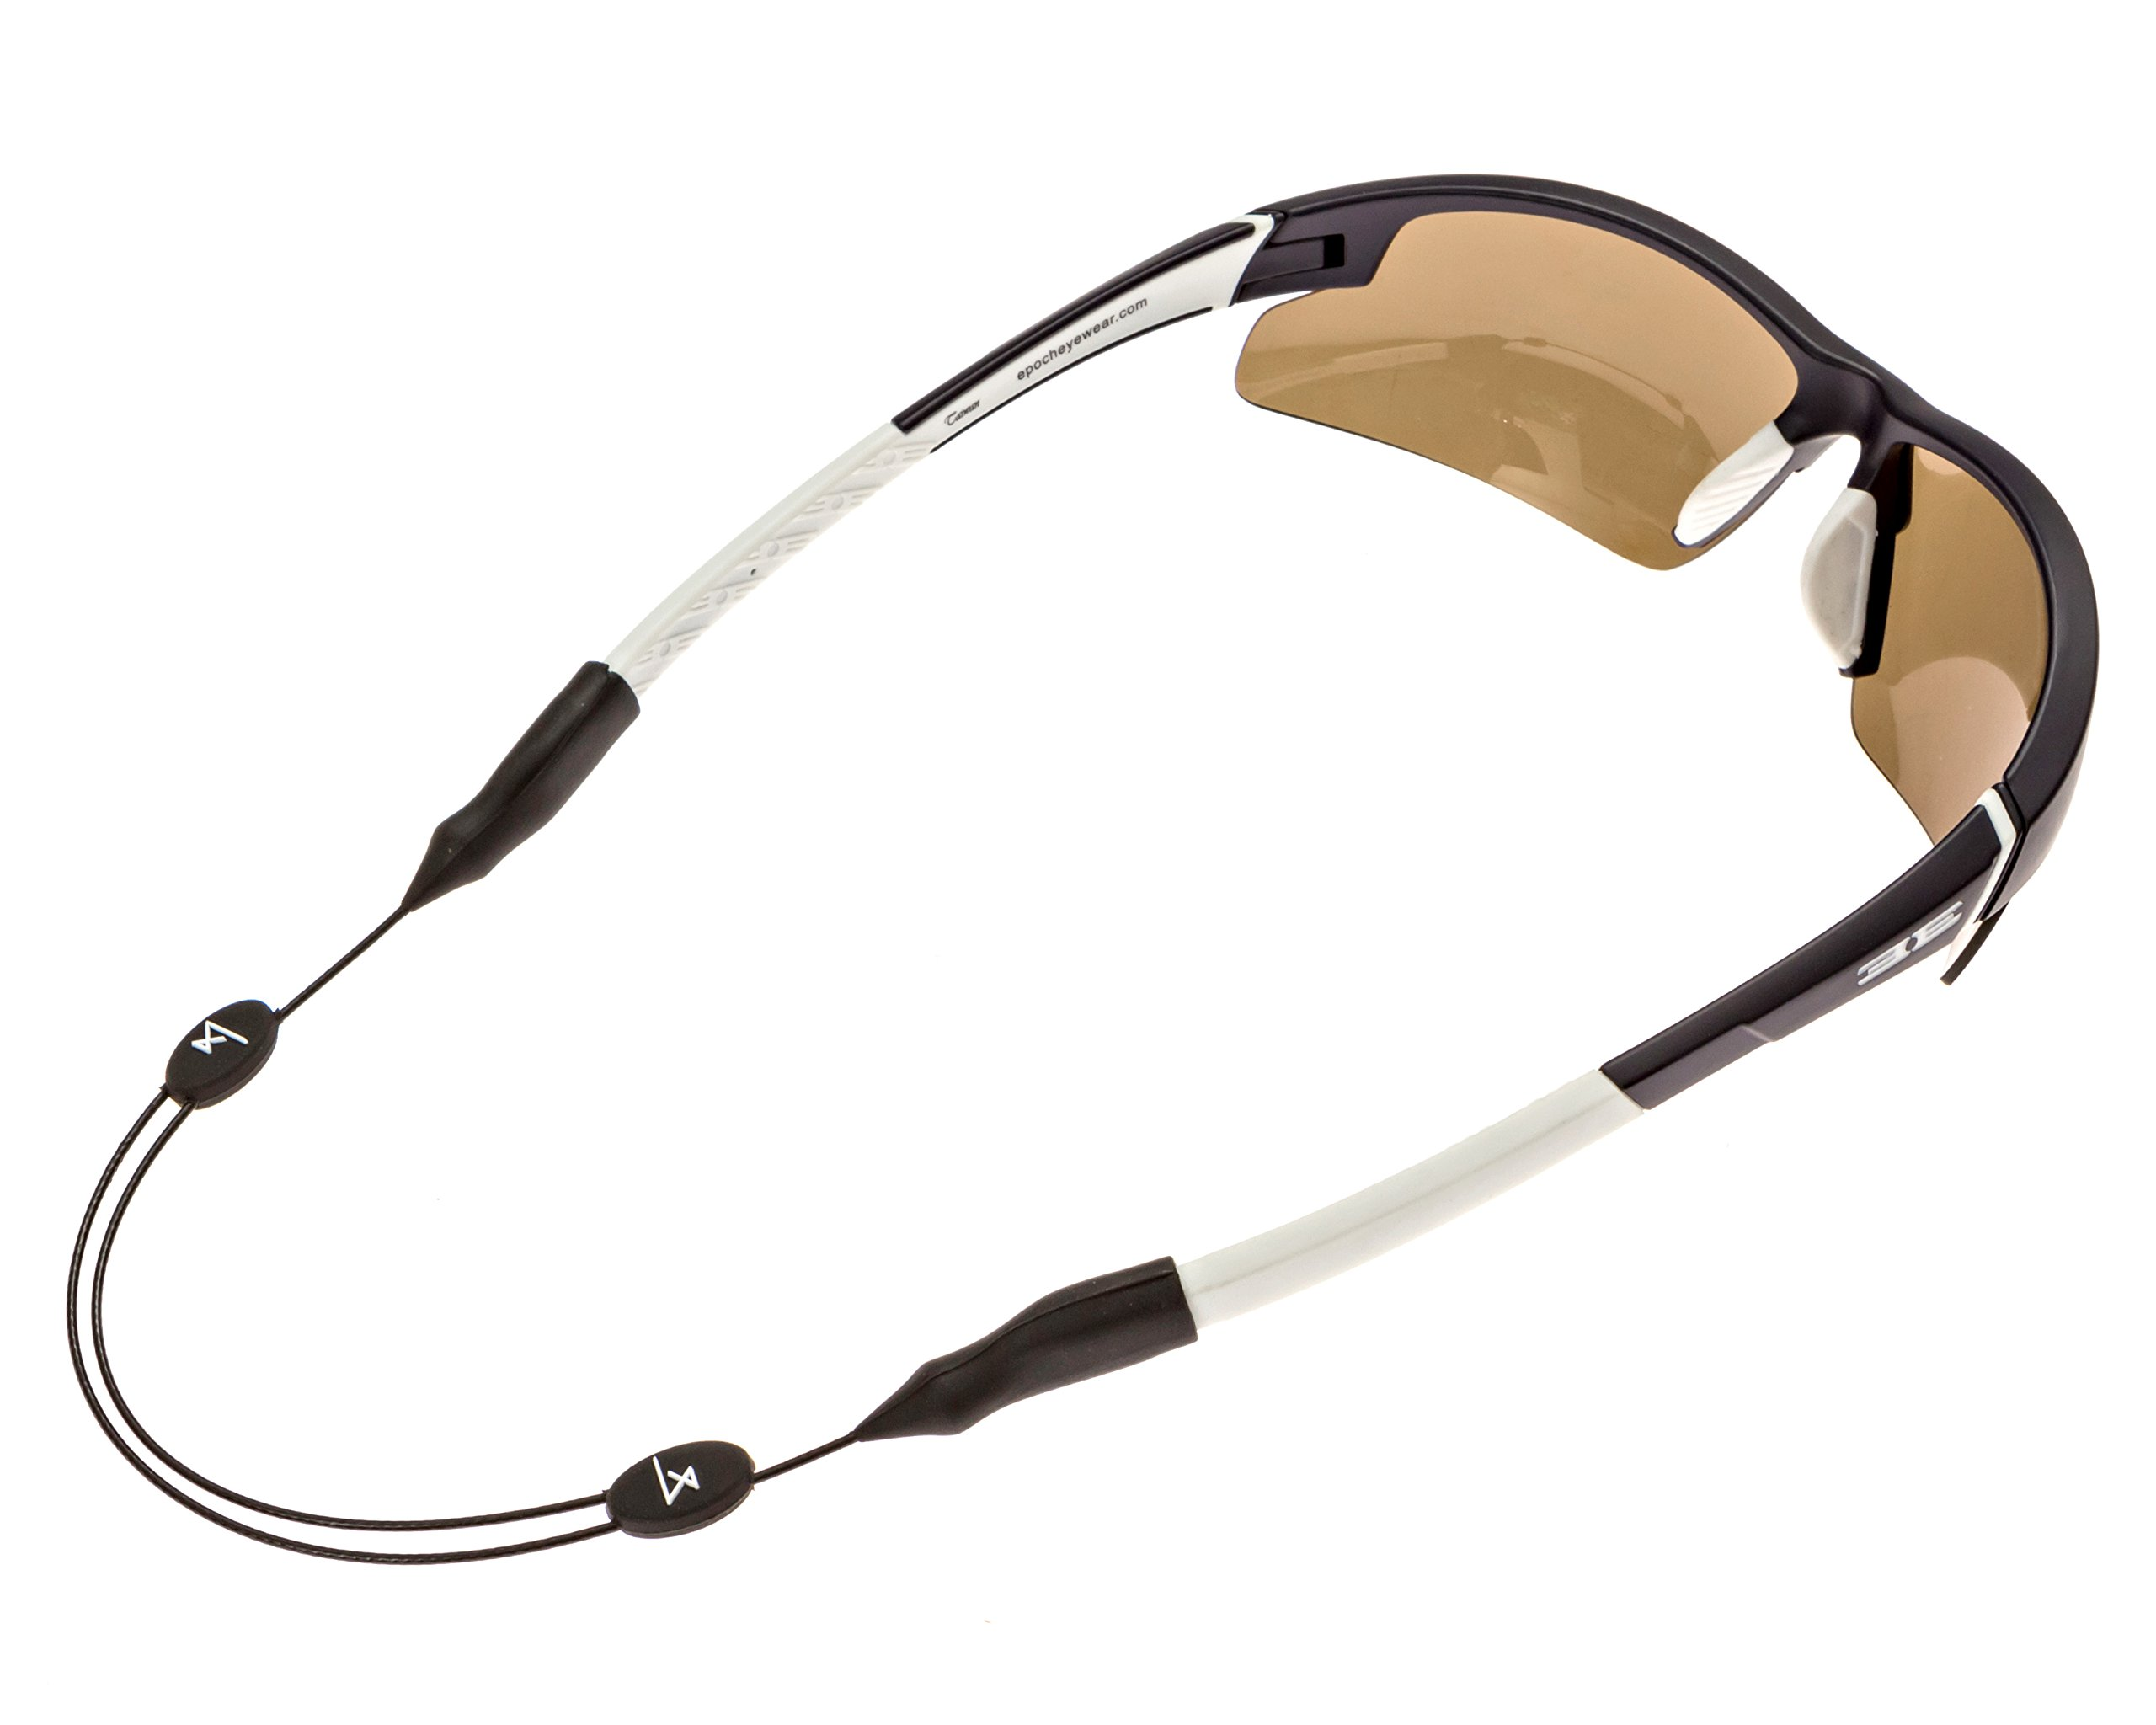 484c9c2a3d6 See all customer reviews · Luxe Performance Cable Strap - Premium  Adjustable No Tail Sunglass Strap   Eyewear Retainer for your